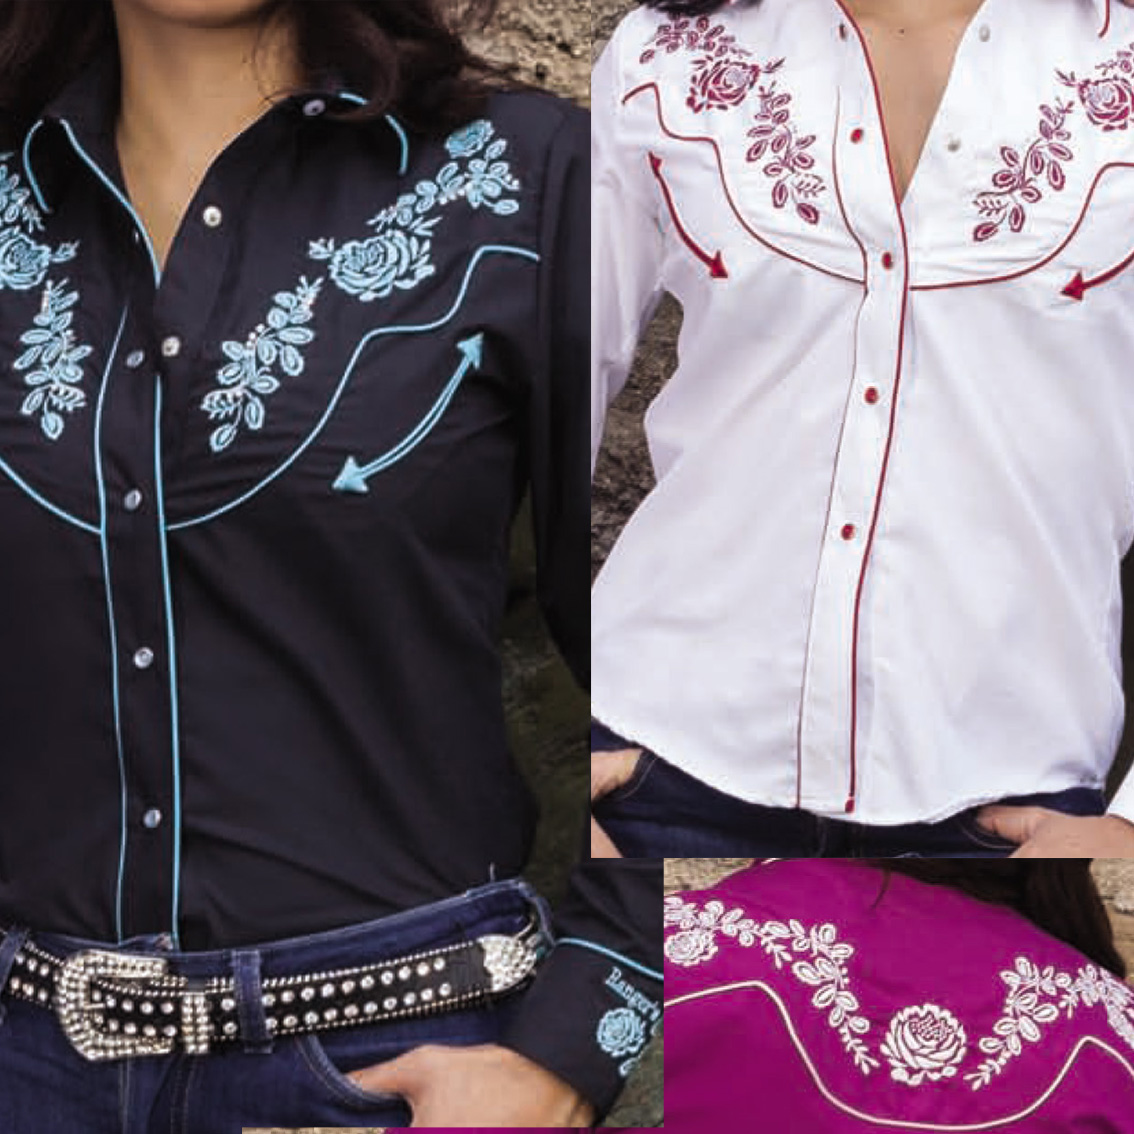 canada usa international quality fit style comfort guaranteed modestone  western country cowboy embroidered shirt rhinestone floral poly cotton long short sleeve checked non shrink kids women men cowgirl polycotton rodeo equestrian line dancing horse riding Rodeo, Bulls tack dude ranch cuff yoke fashion accessories distributor wholesale retail